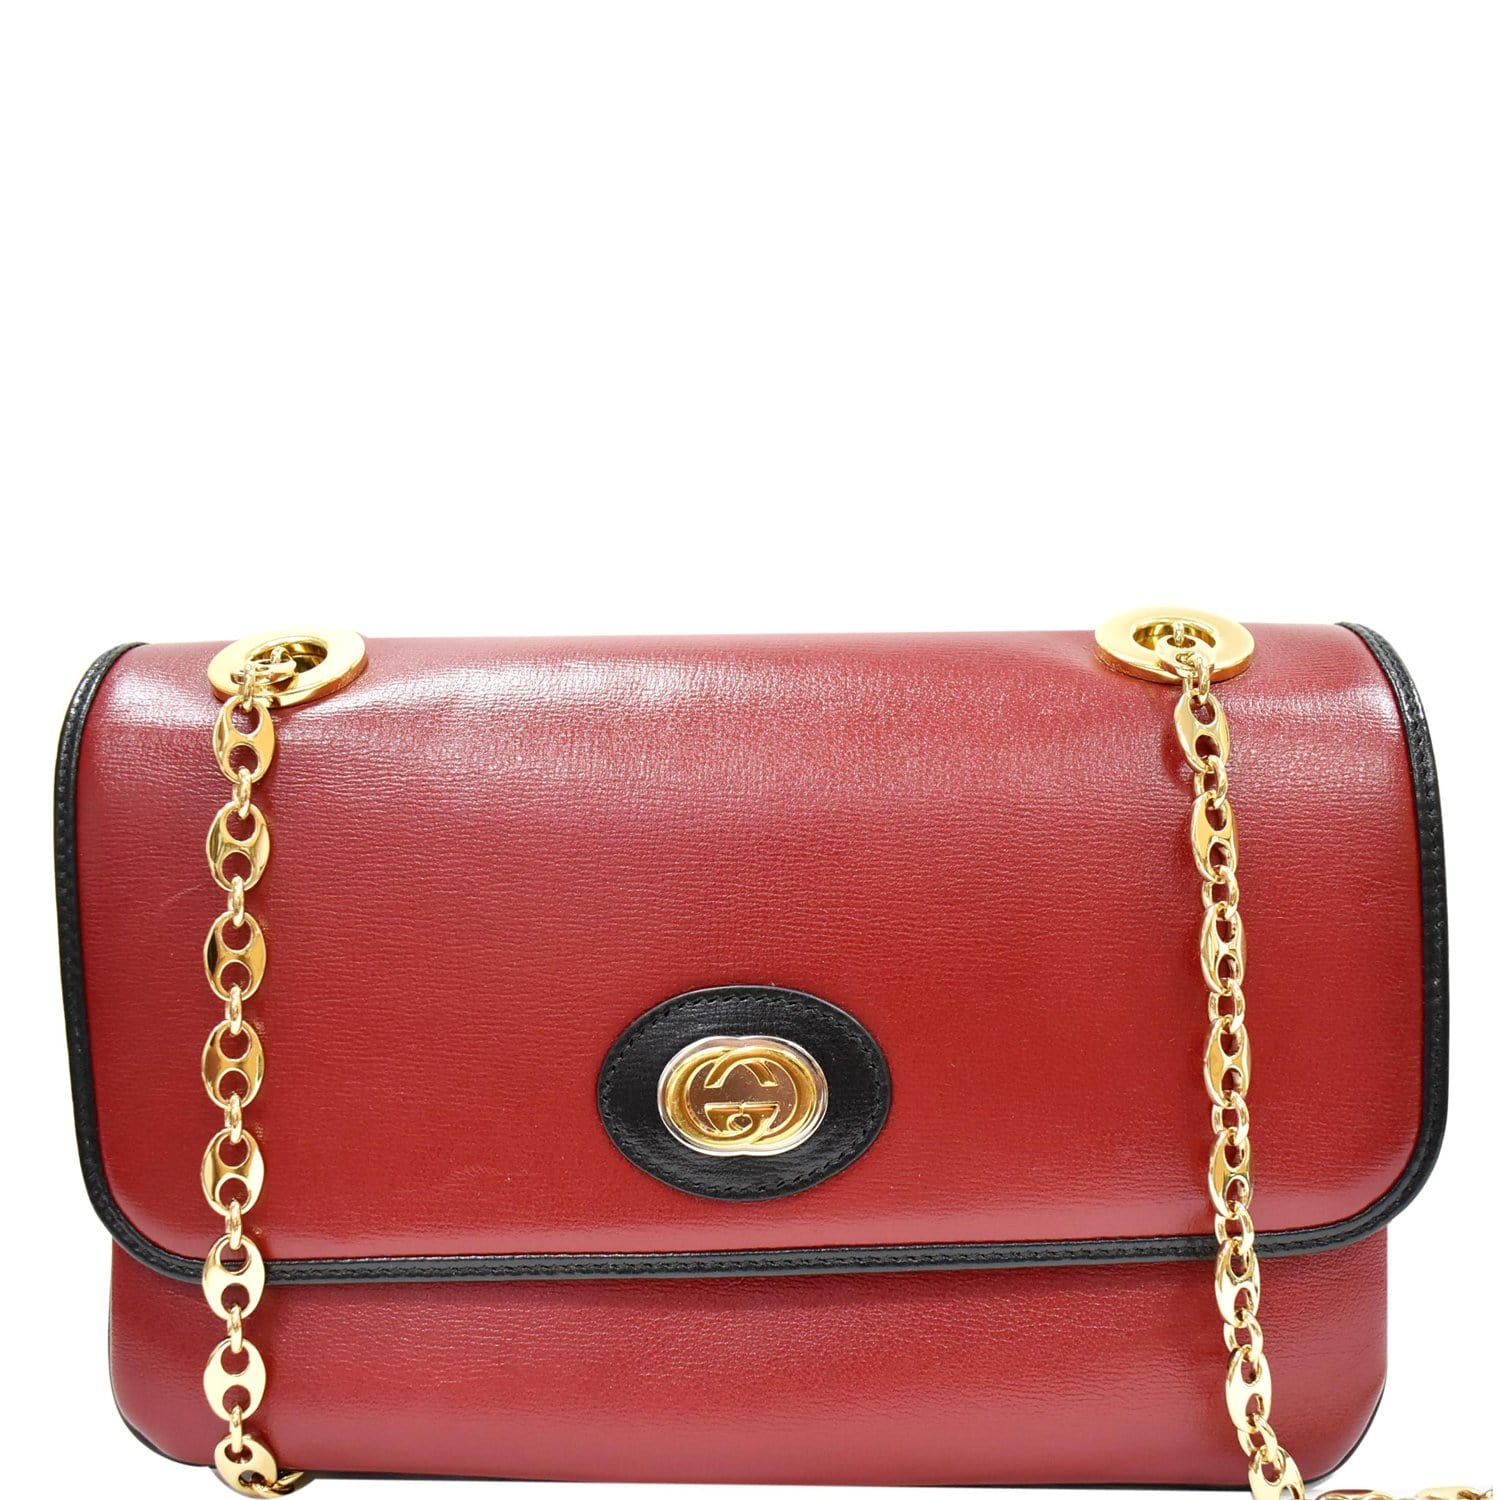 GUCCI Linea Marina Small Leather Chain Shoulder Bag Red 576421